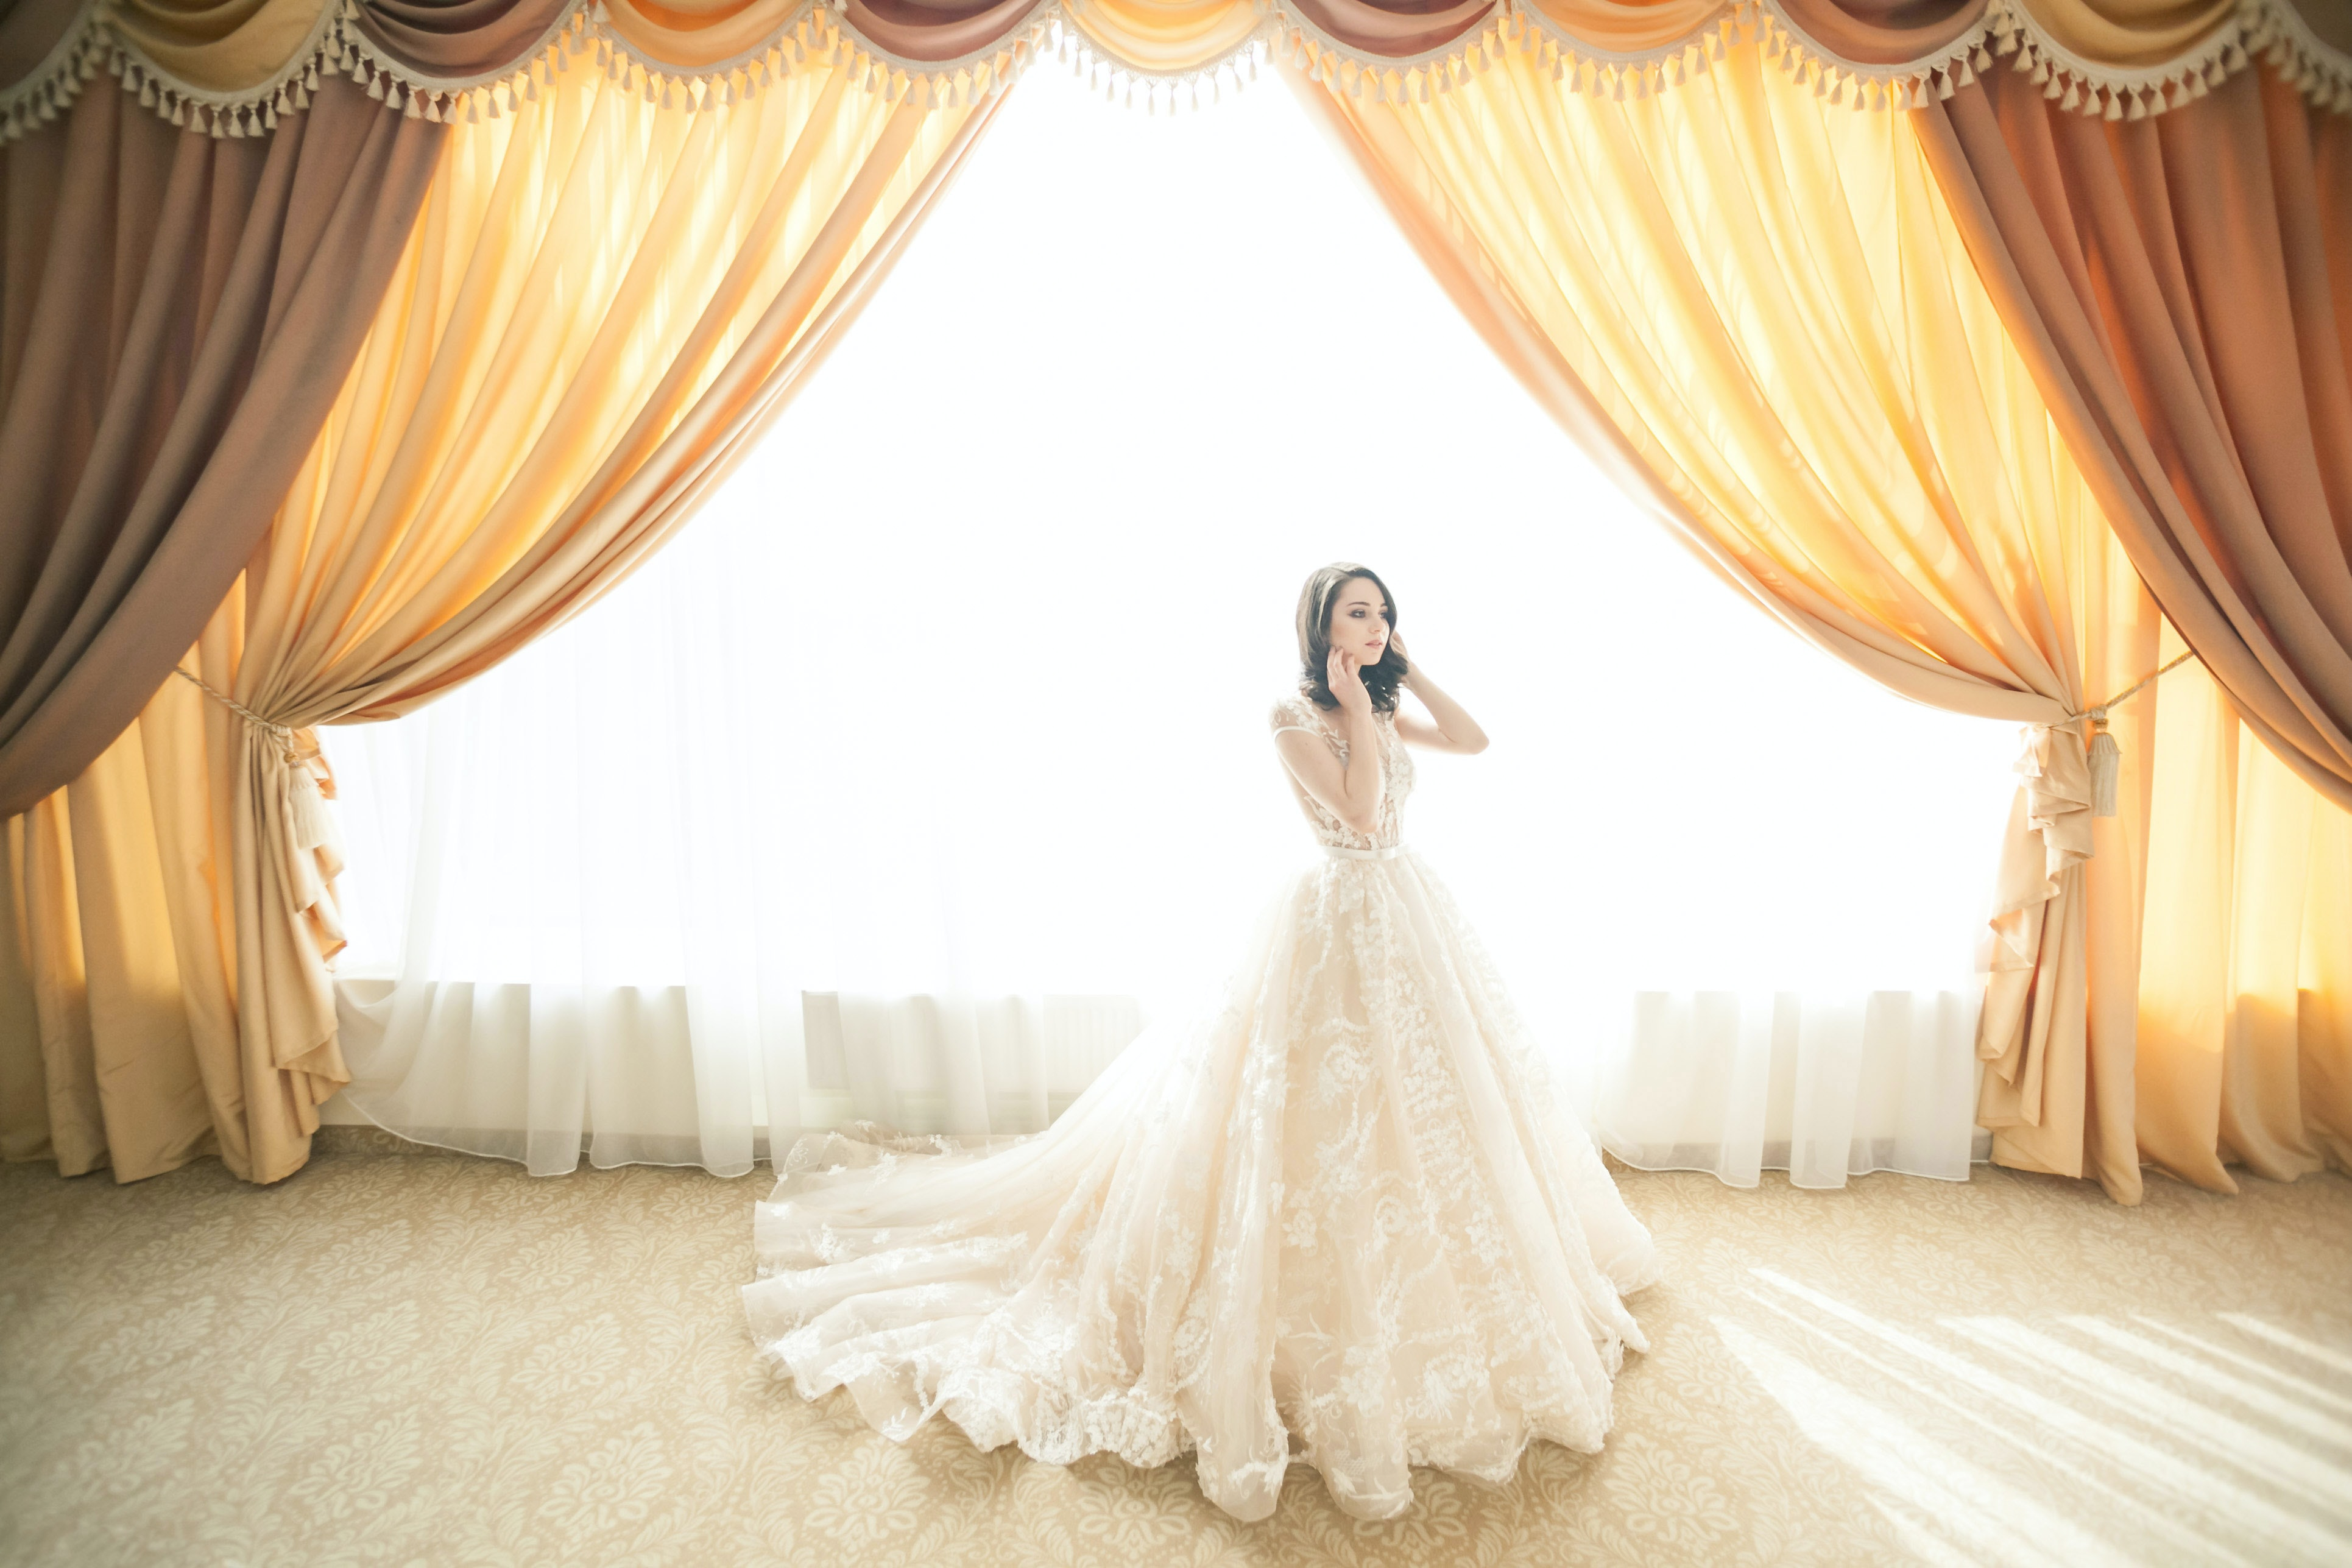 Stunning bride in lace dress poses in front of giant window as light flows in